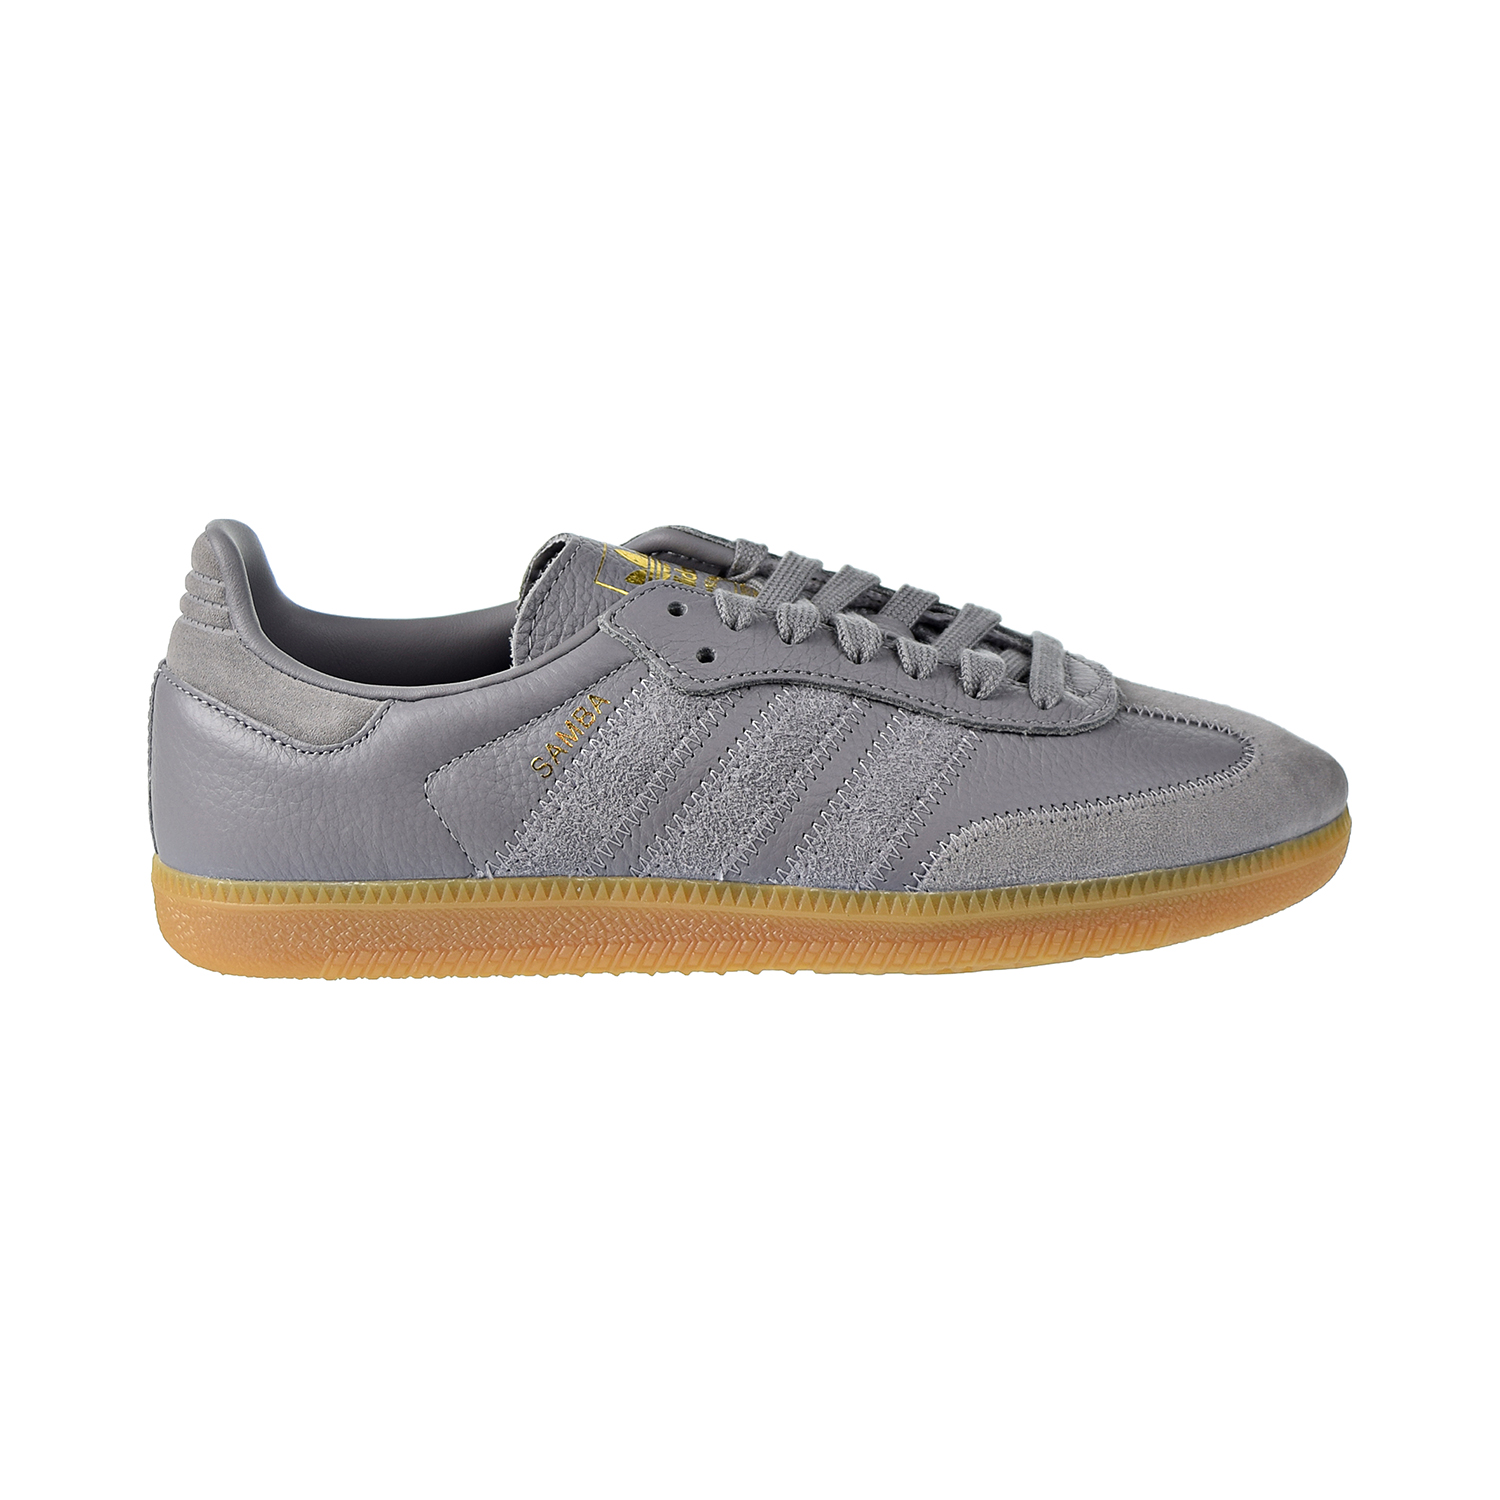 Details about Adidas Samba OG FT Mens Shoes Grey Three-Grey Three-Gold  Metallic BD7963